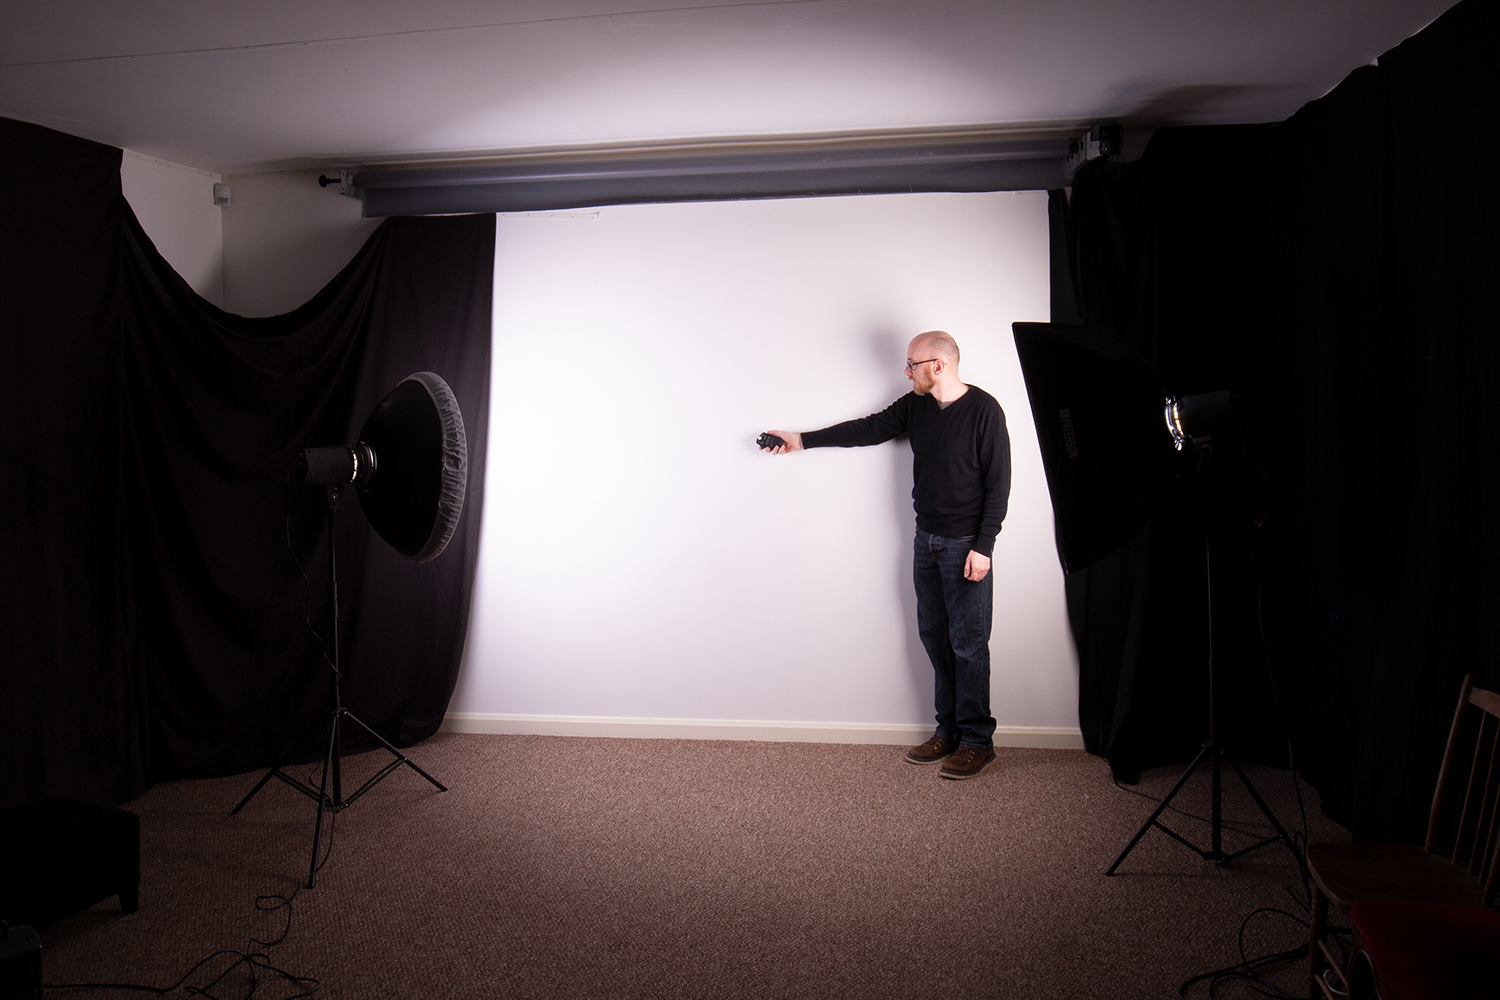 Image: The easiest way to find the exposure for you background is to use a light meter. Don't...